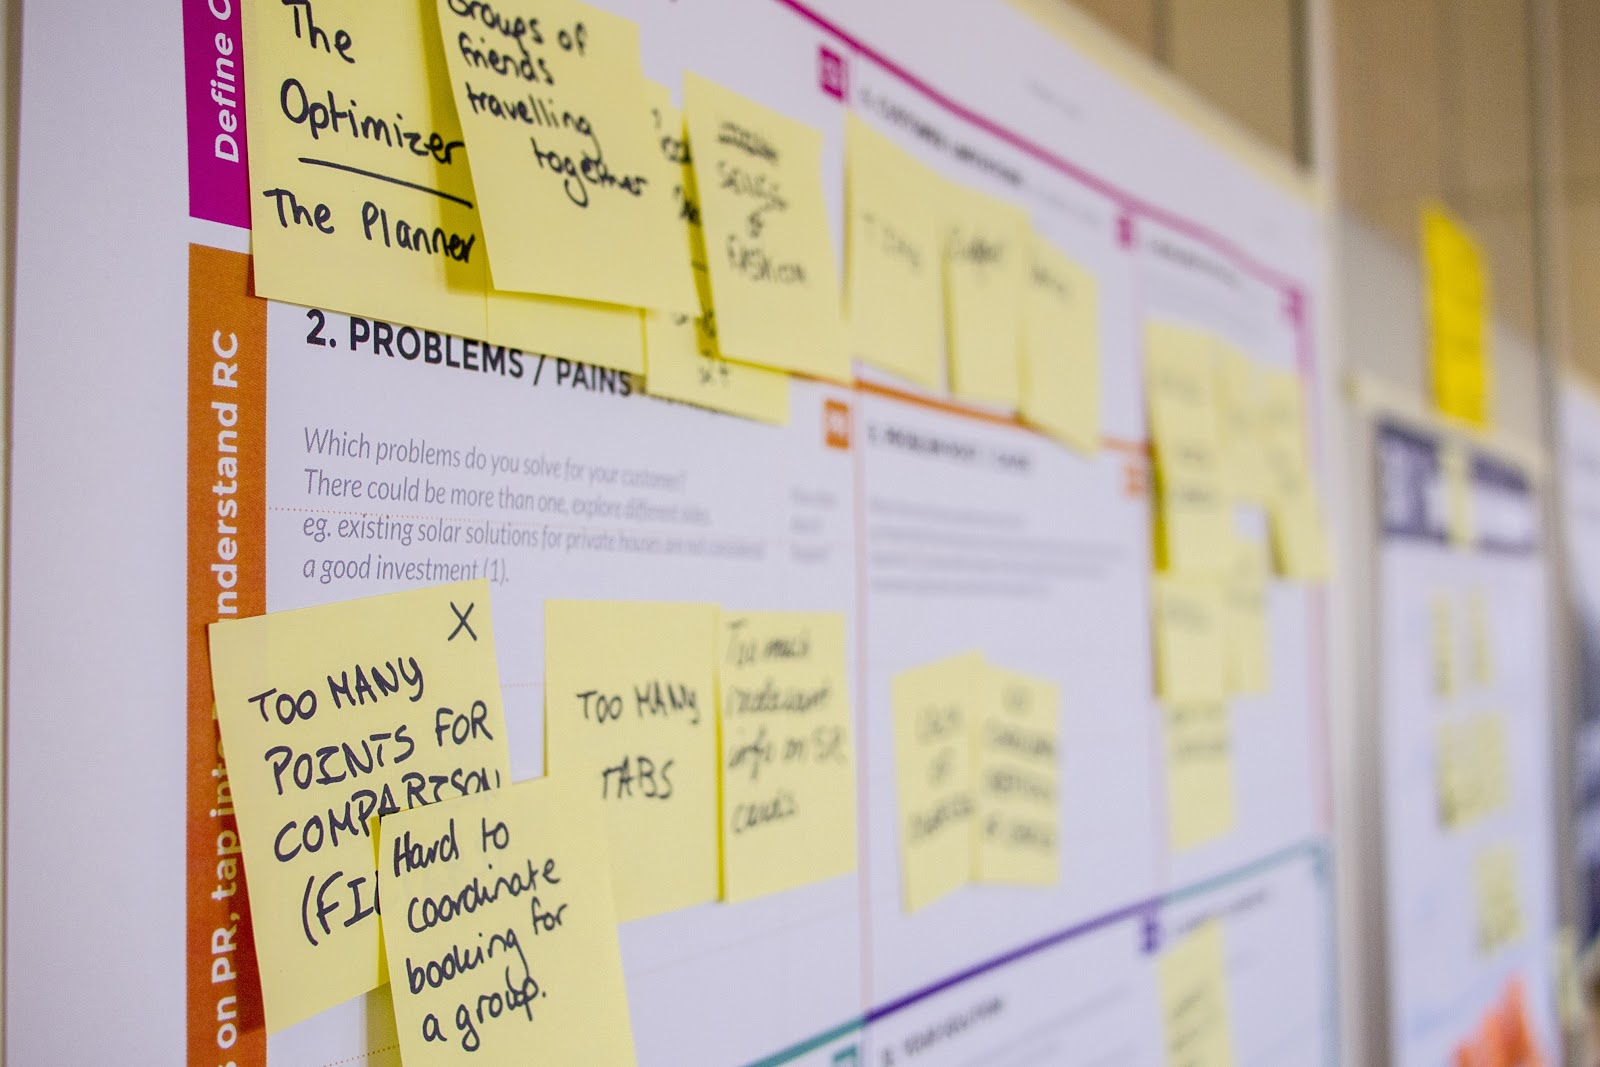 post-it notes on a strategy board